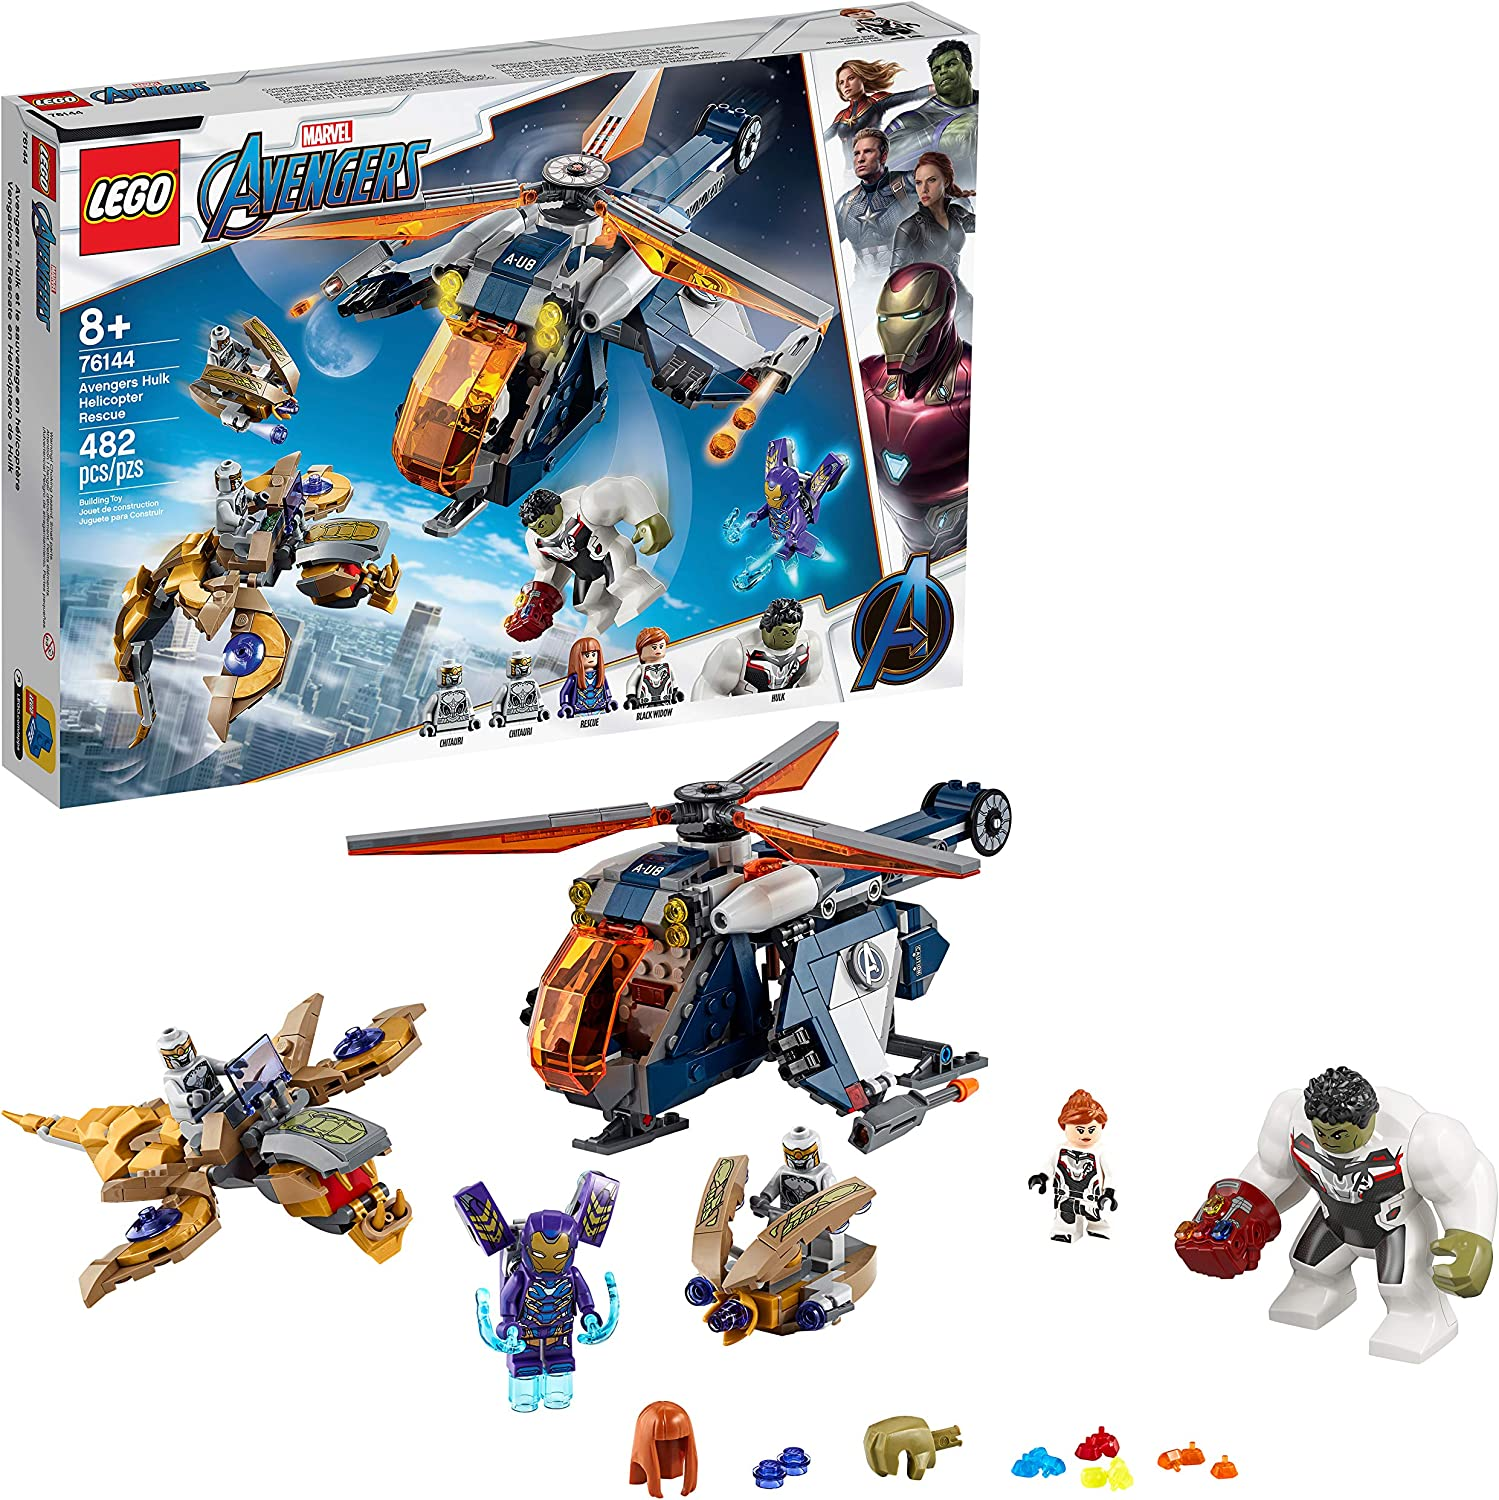 LEGO Marvel Avengers Hulk Helicopter Rescue 76144 Building Kit (482 Pieces)